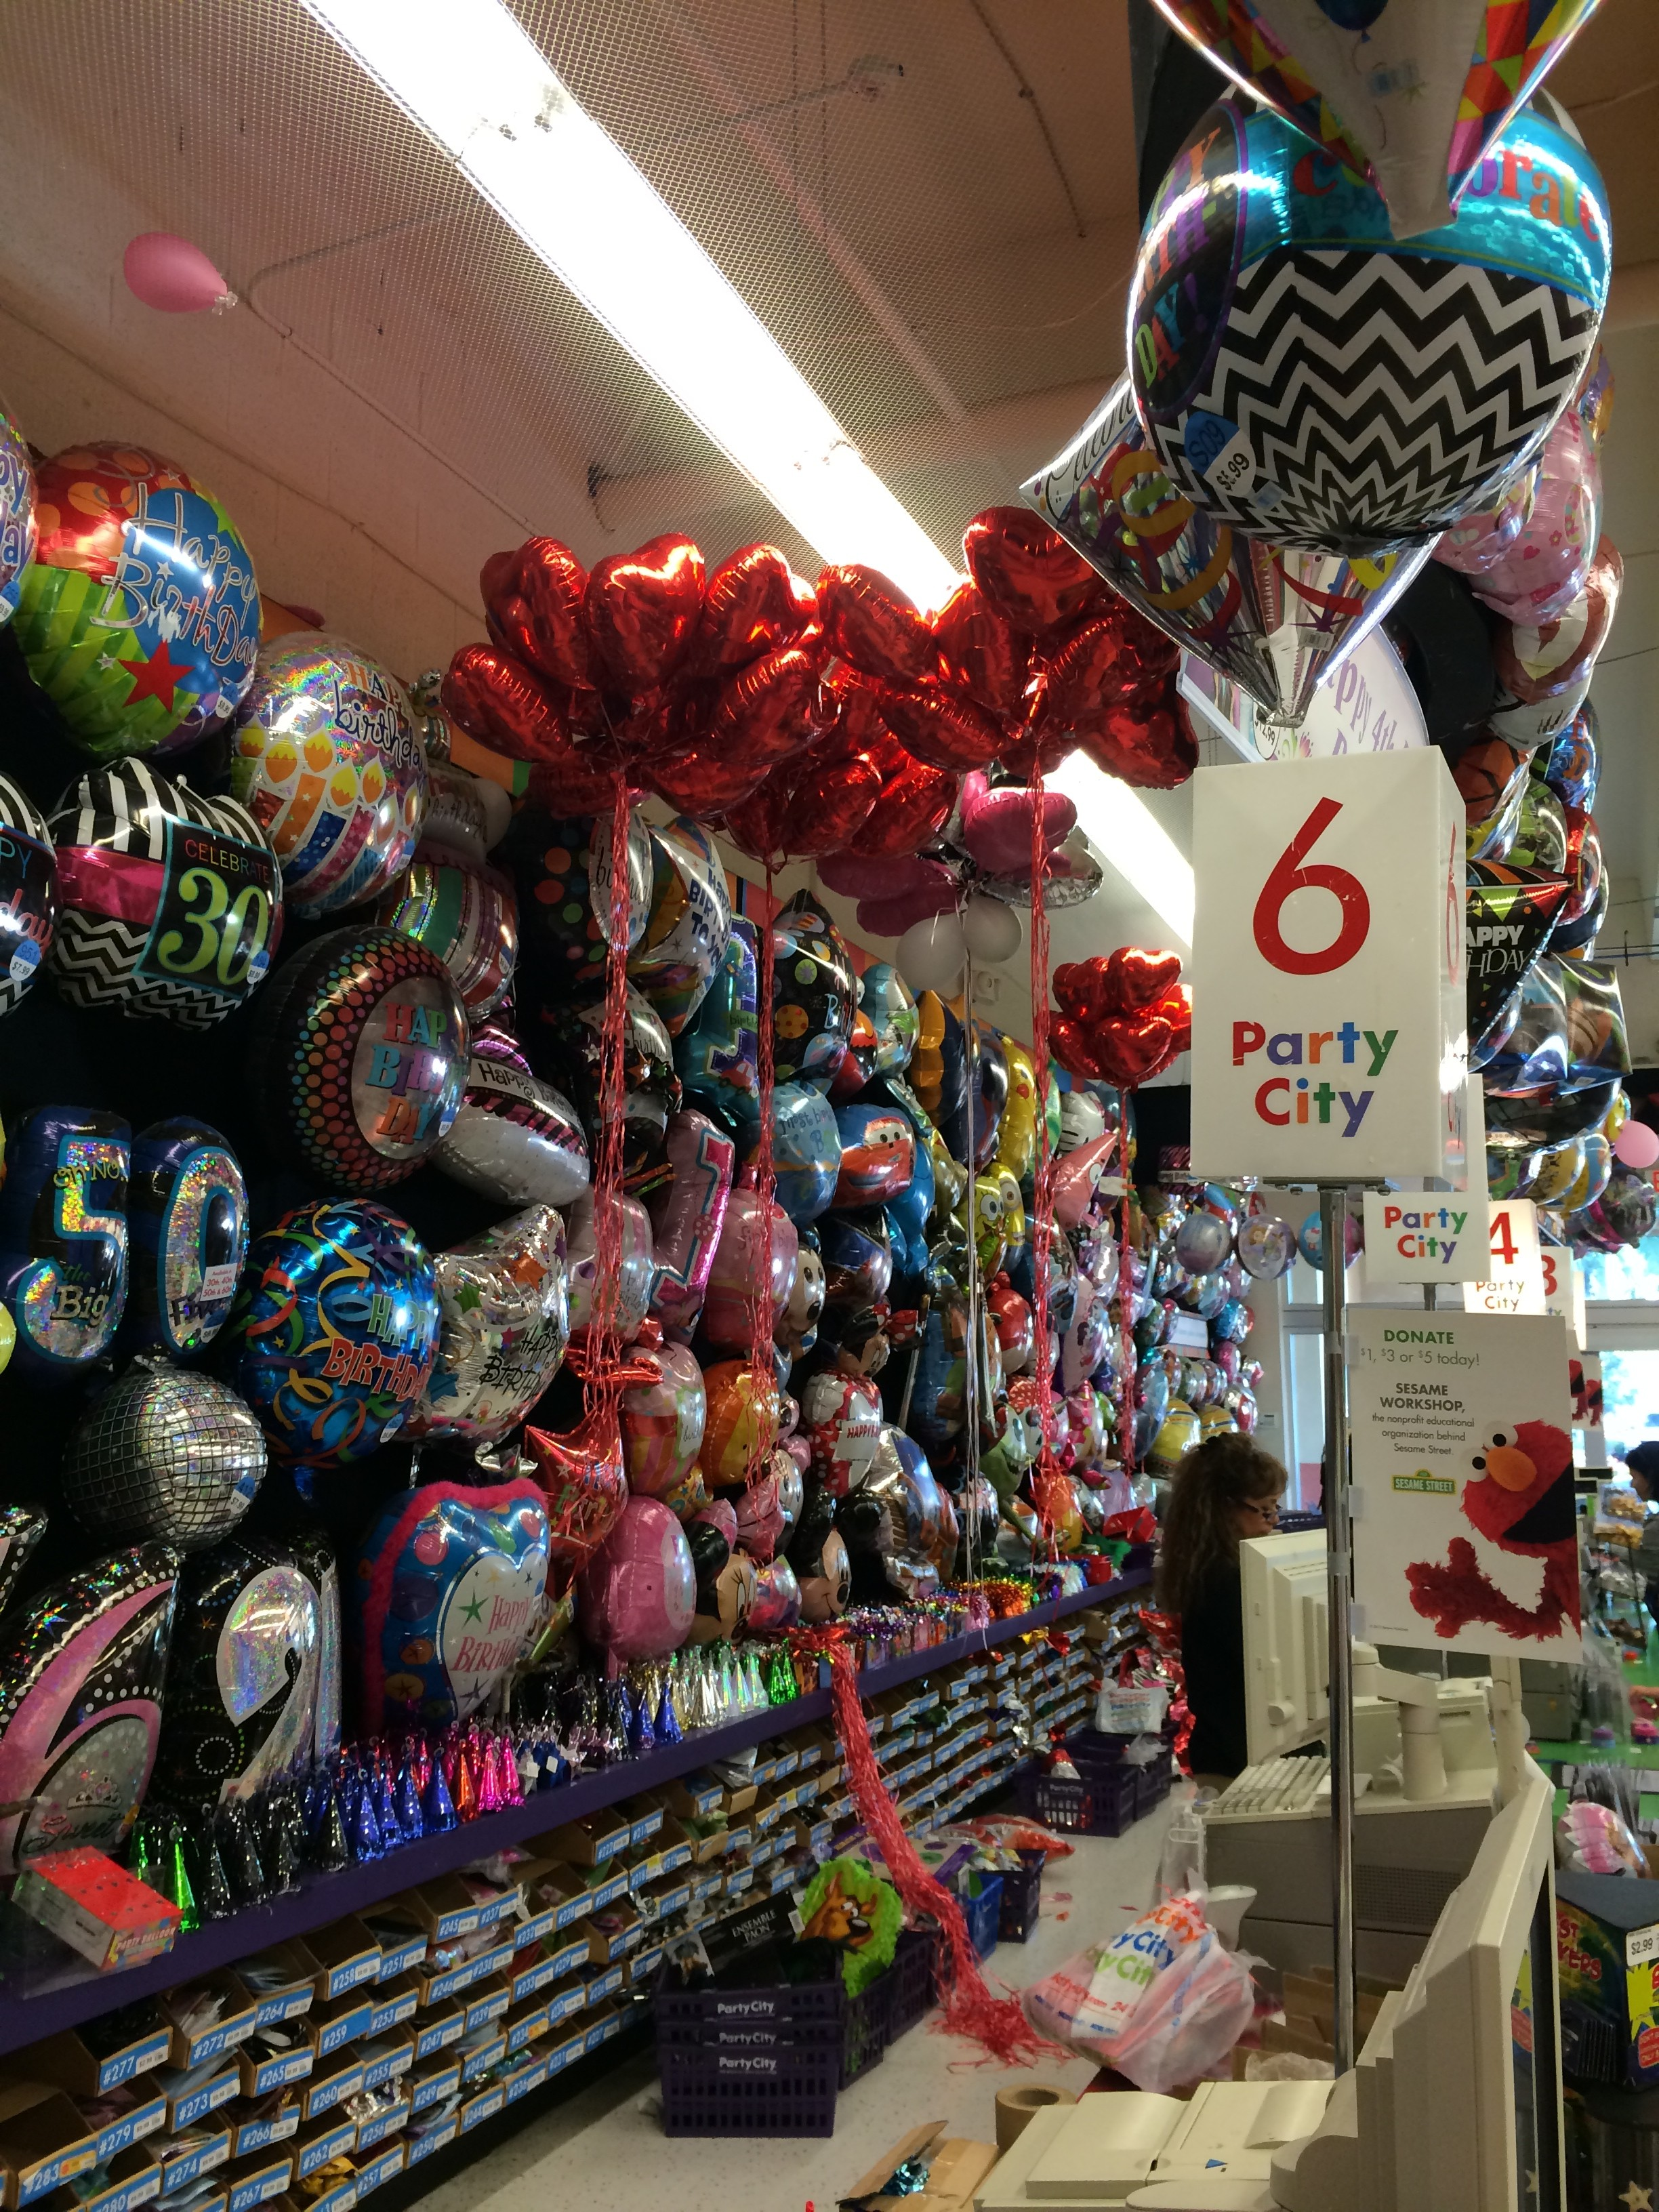 Balloons help set your party mood!